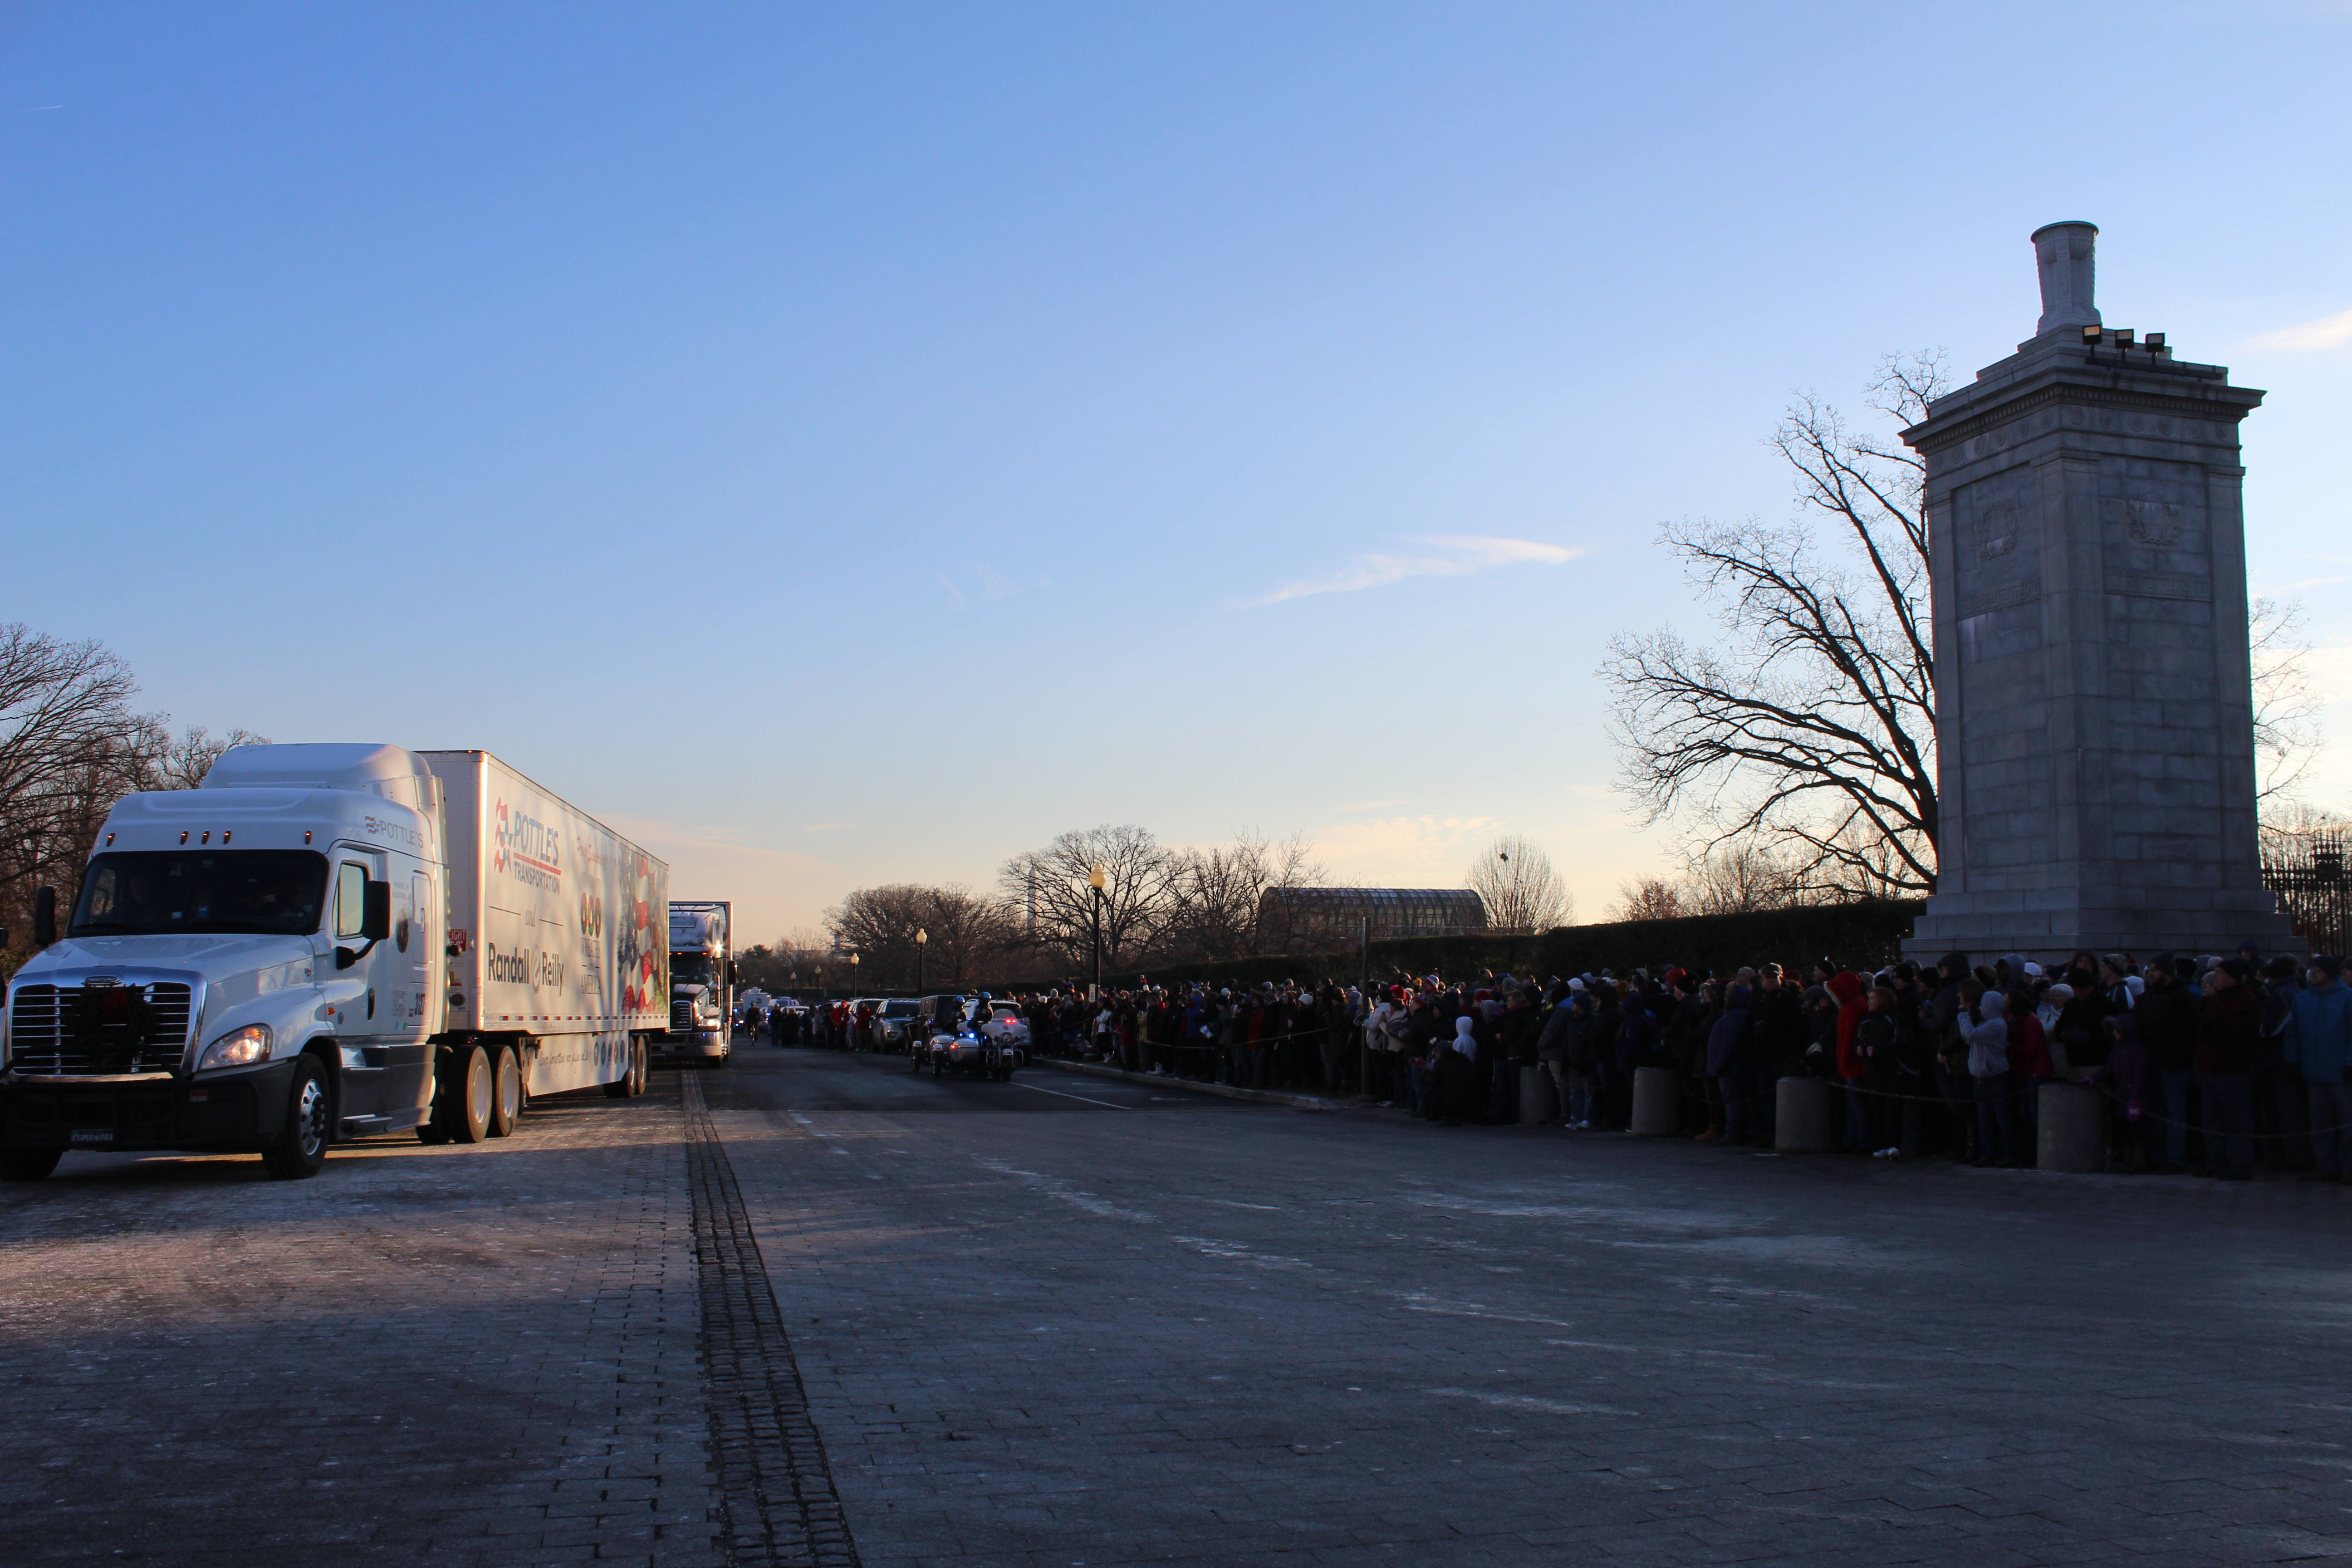 Trucks Bring In Wreaths For Wreaths Across America (Julia Nista/The Daily Caller)